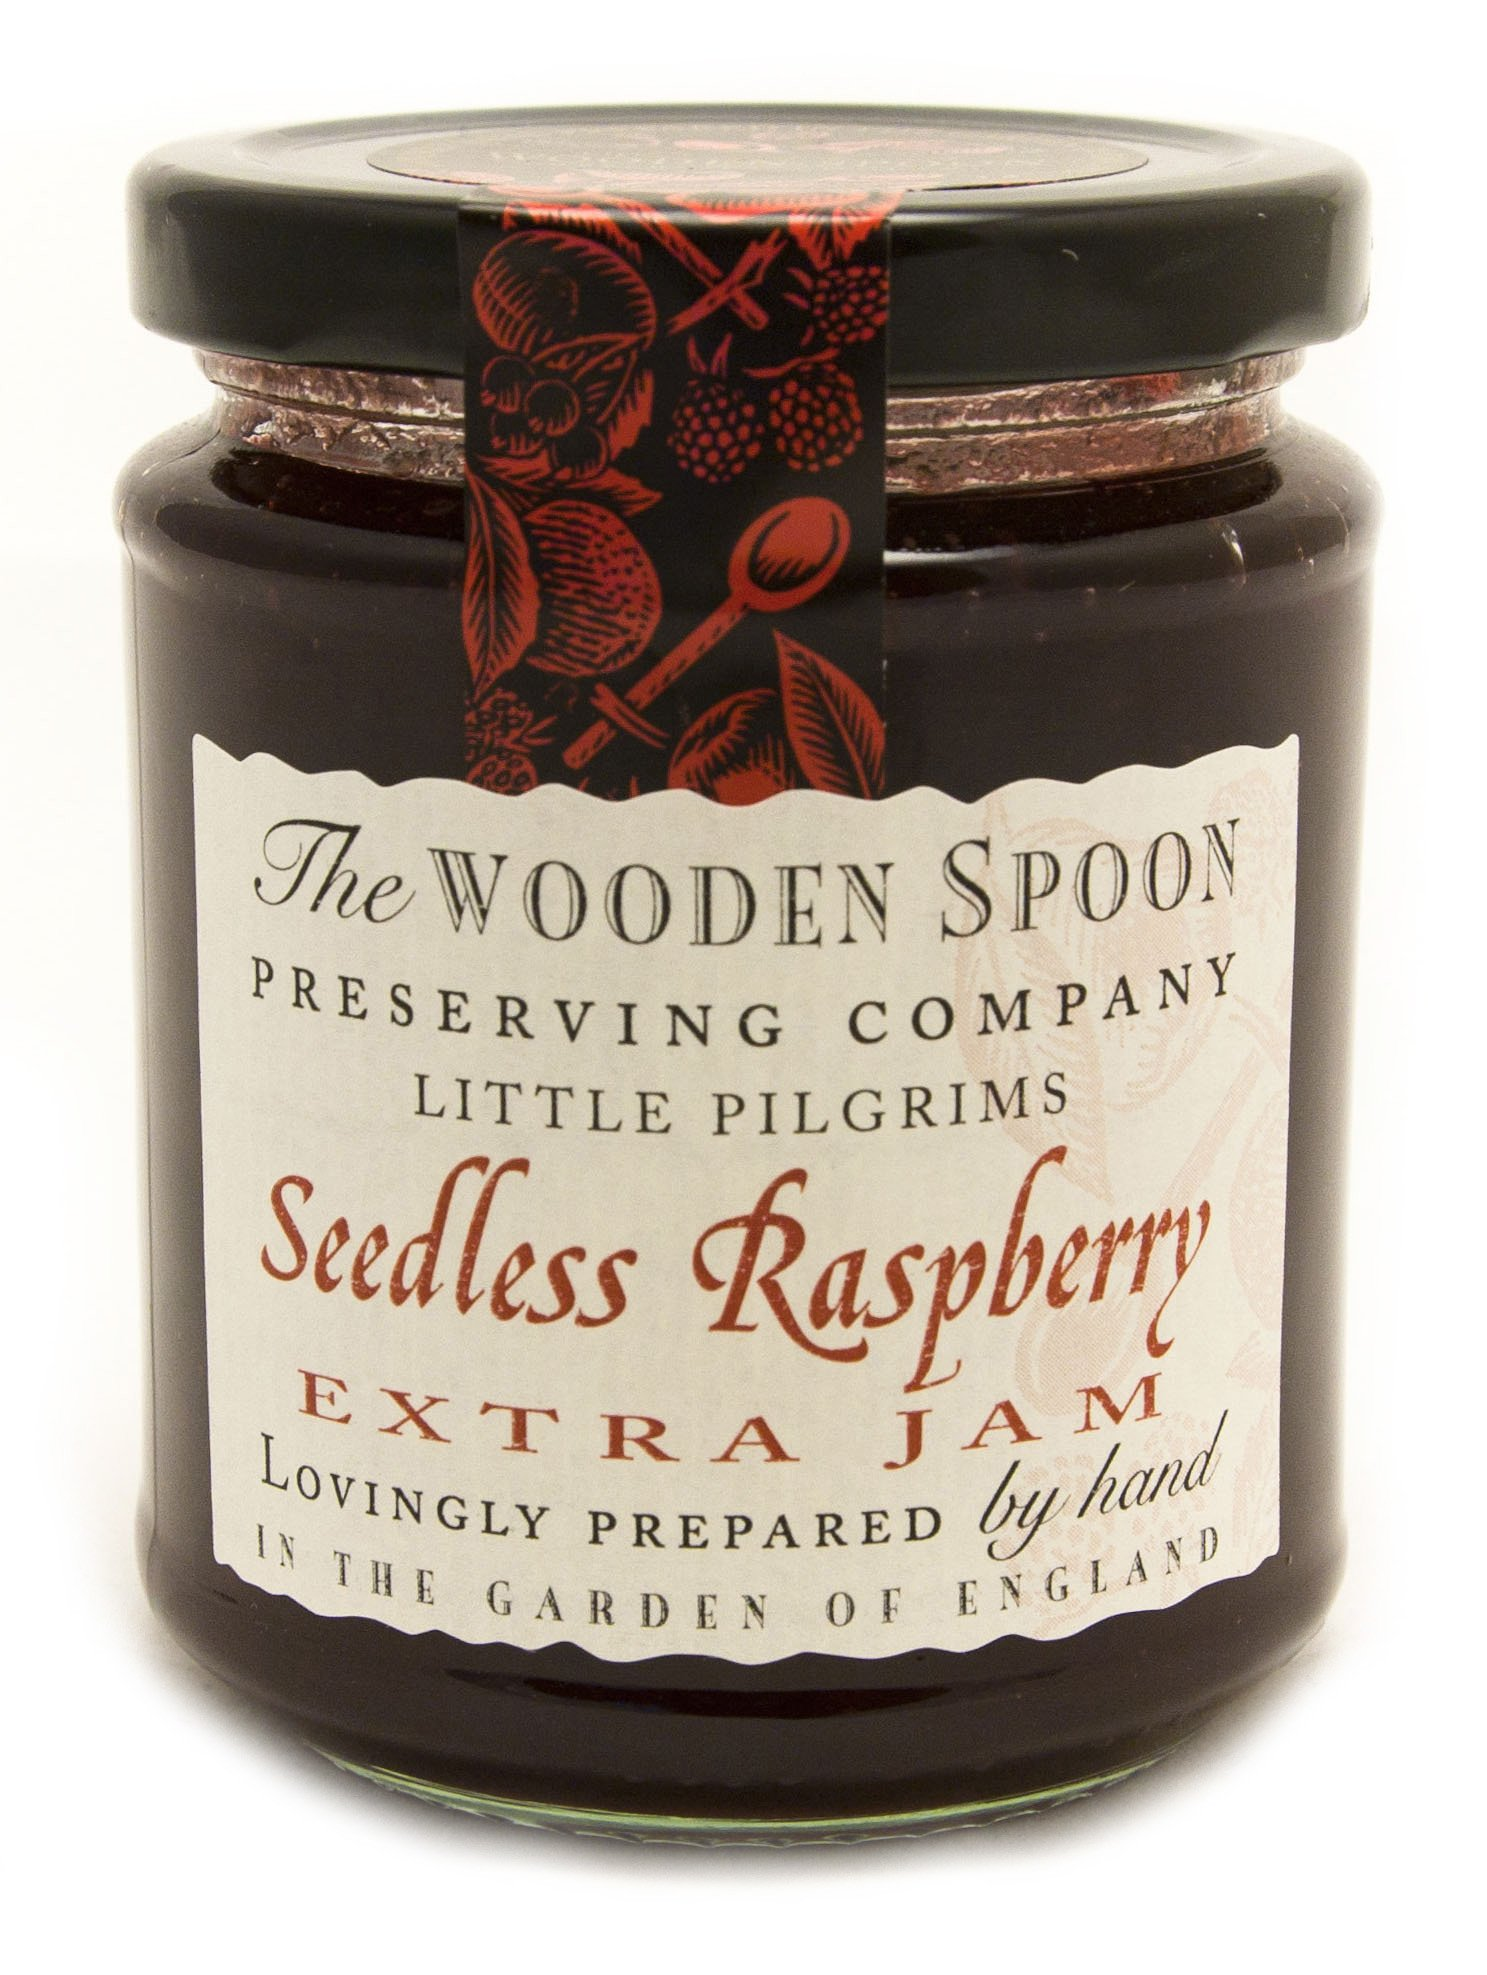 Little Pilgrim - Seedless Raspberry